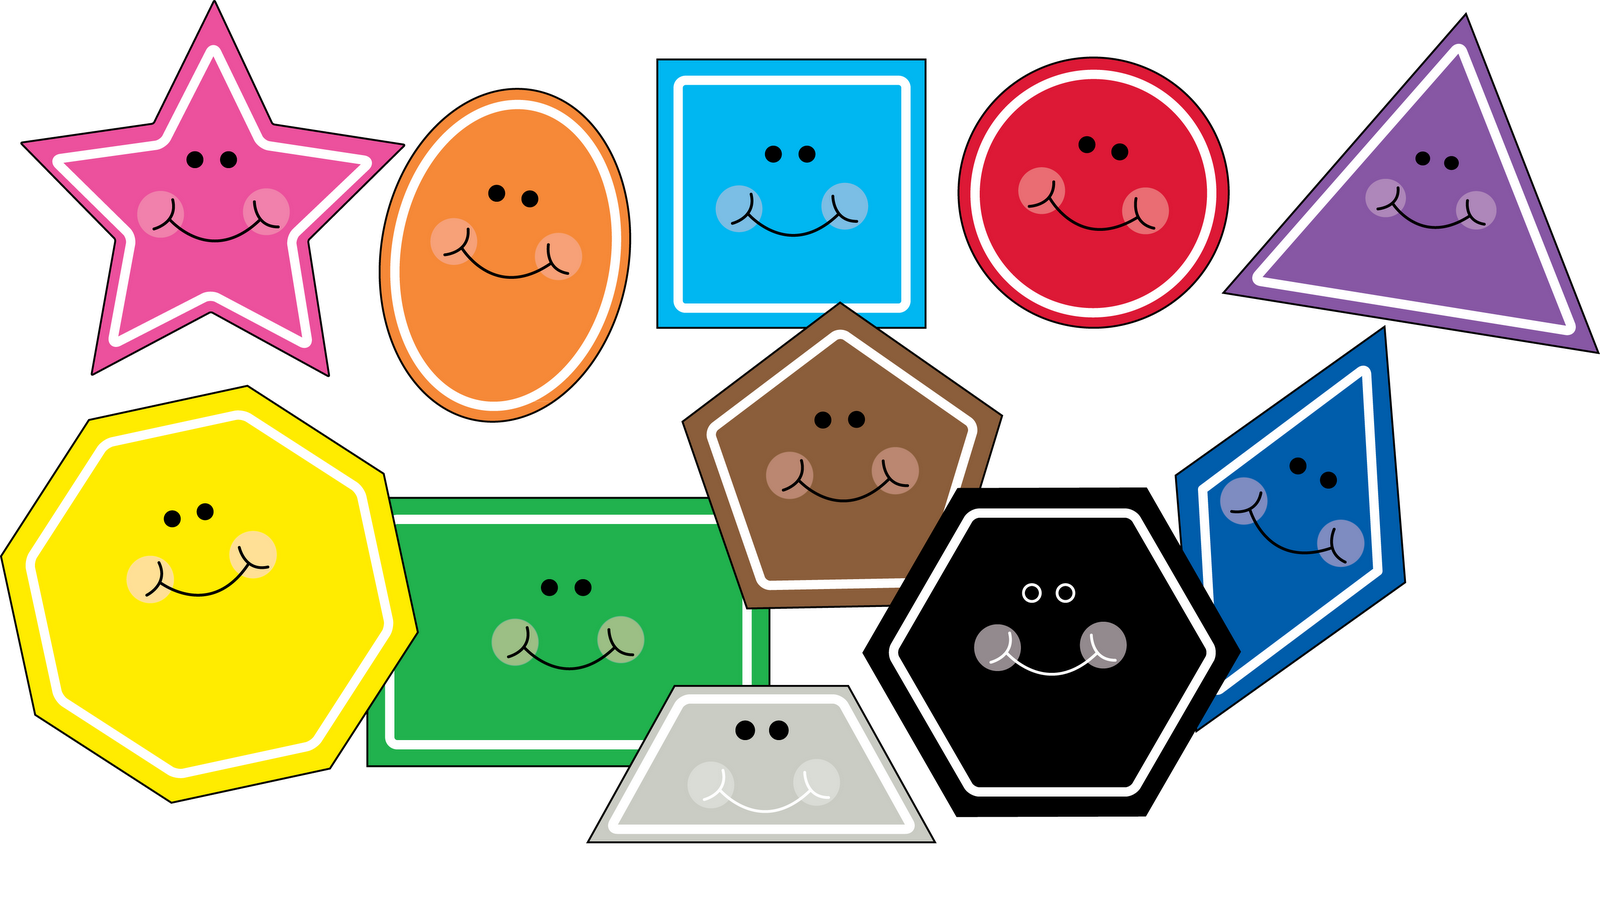 Free Basic Shapes Cliparts, Download Free Clip Art, Free.